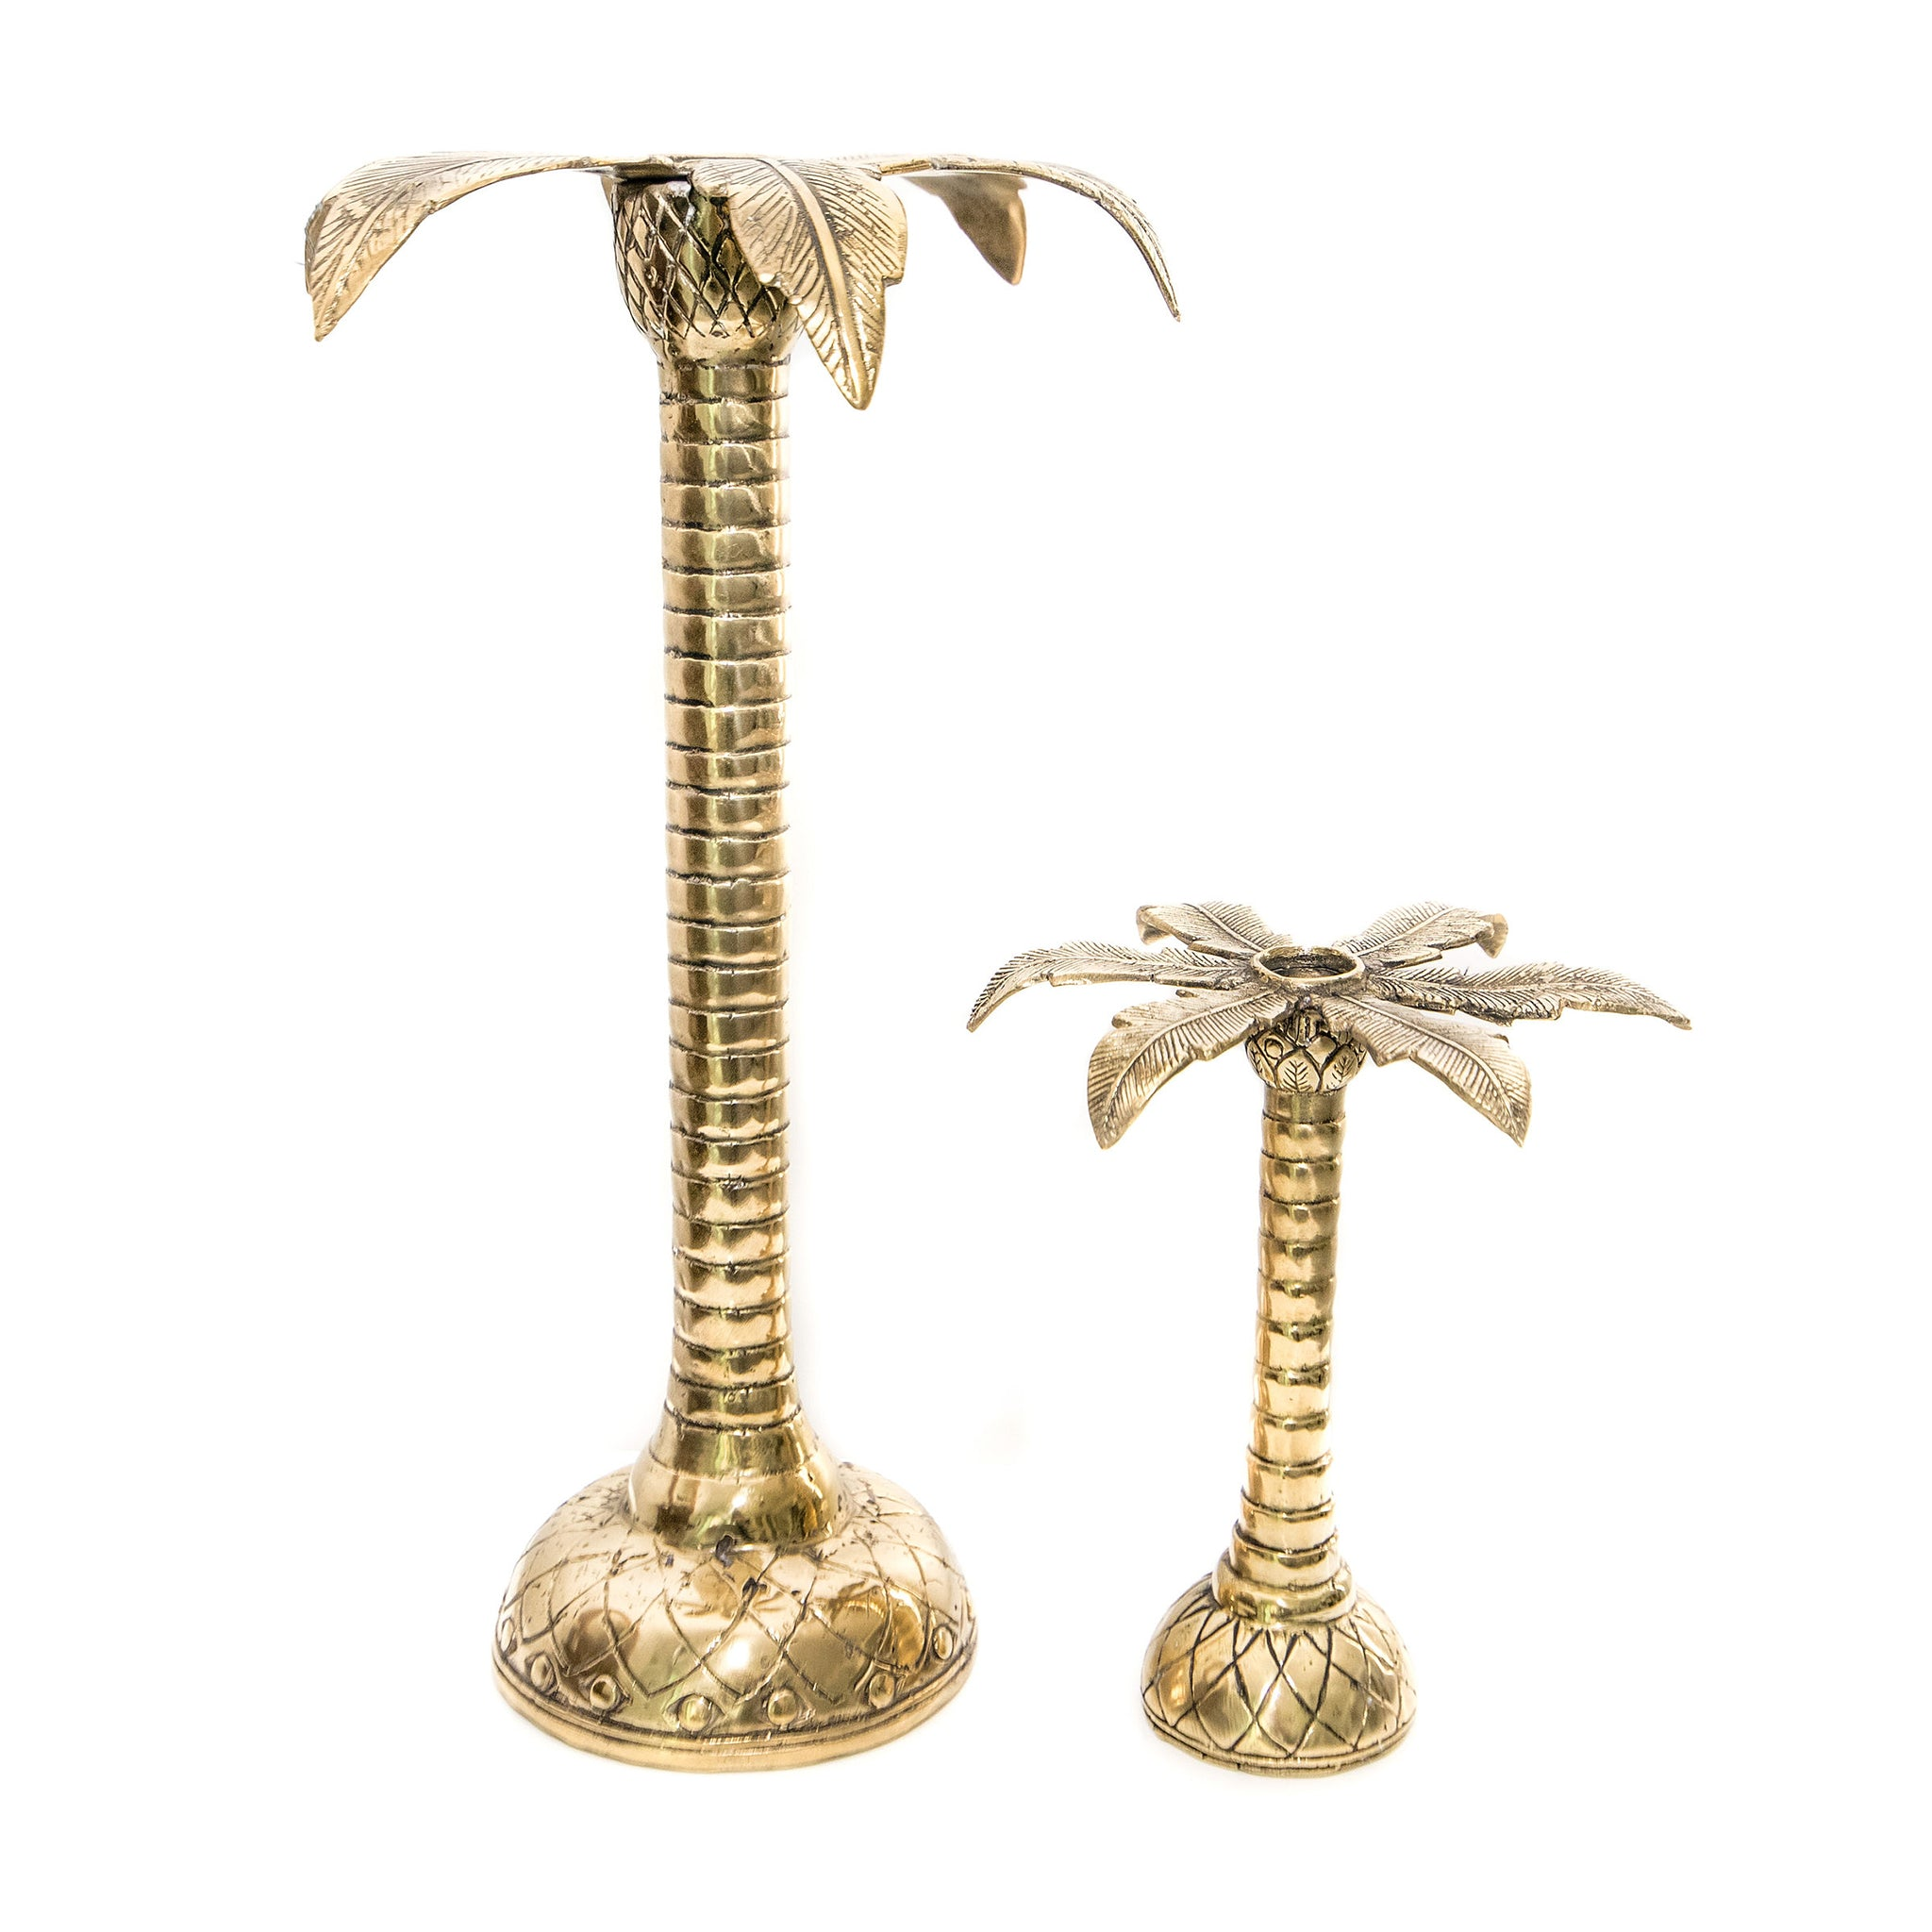 BRASS CANDELESTICK HOLDERS - SILVER OR BRASS